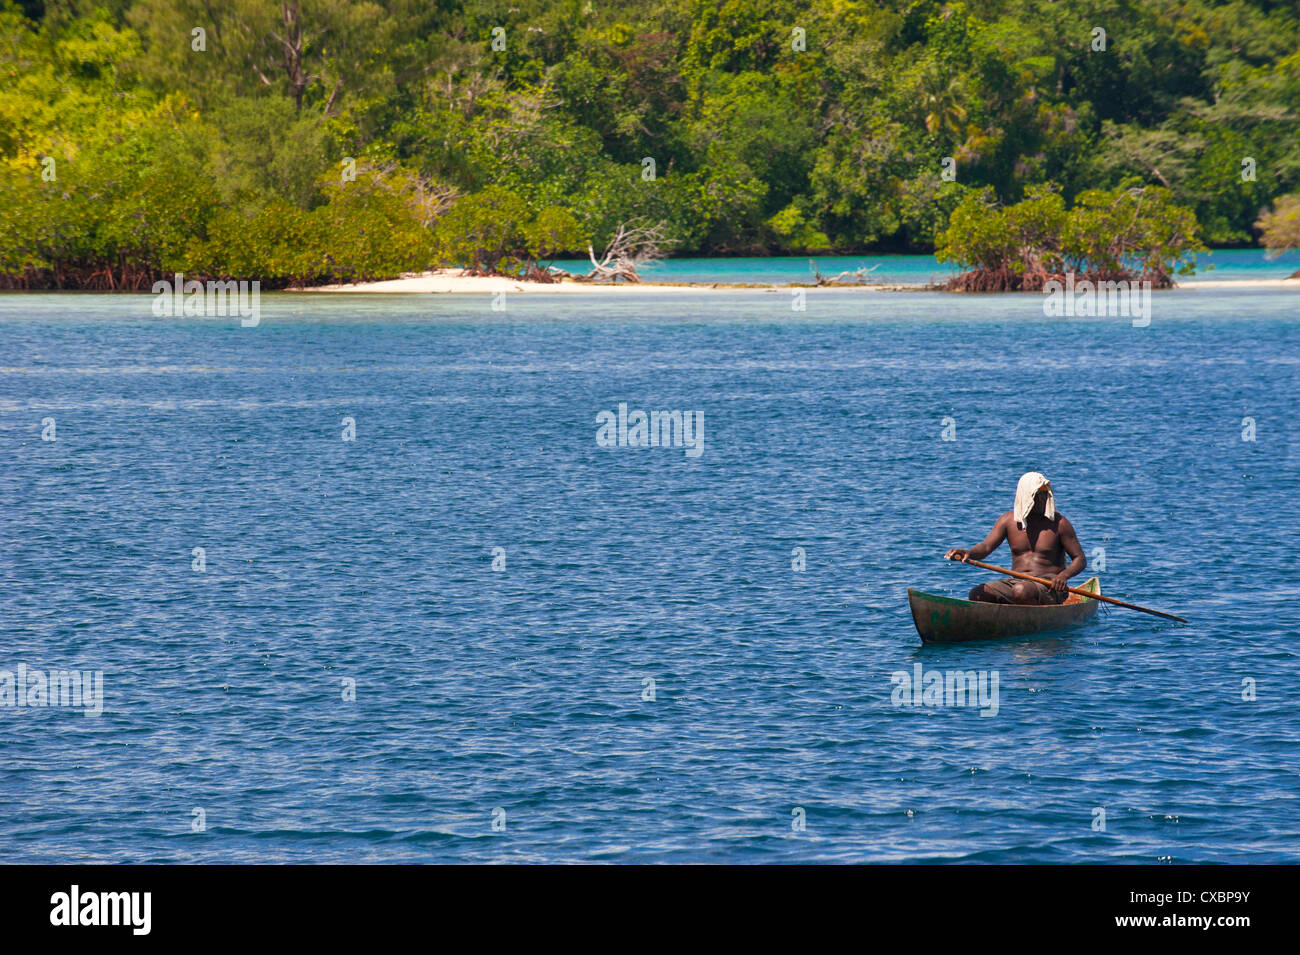 Man sitting in his canoe, Marovo Lagoon, Solomon Islands, Pacific - Stock Image